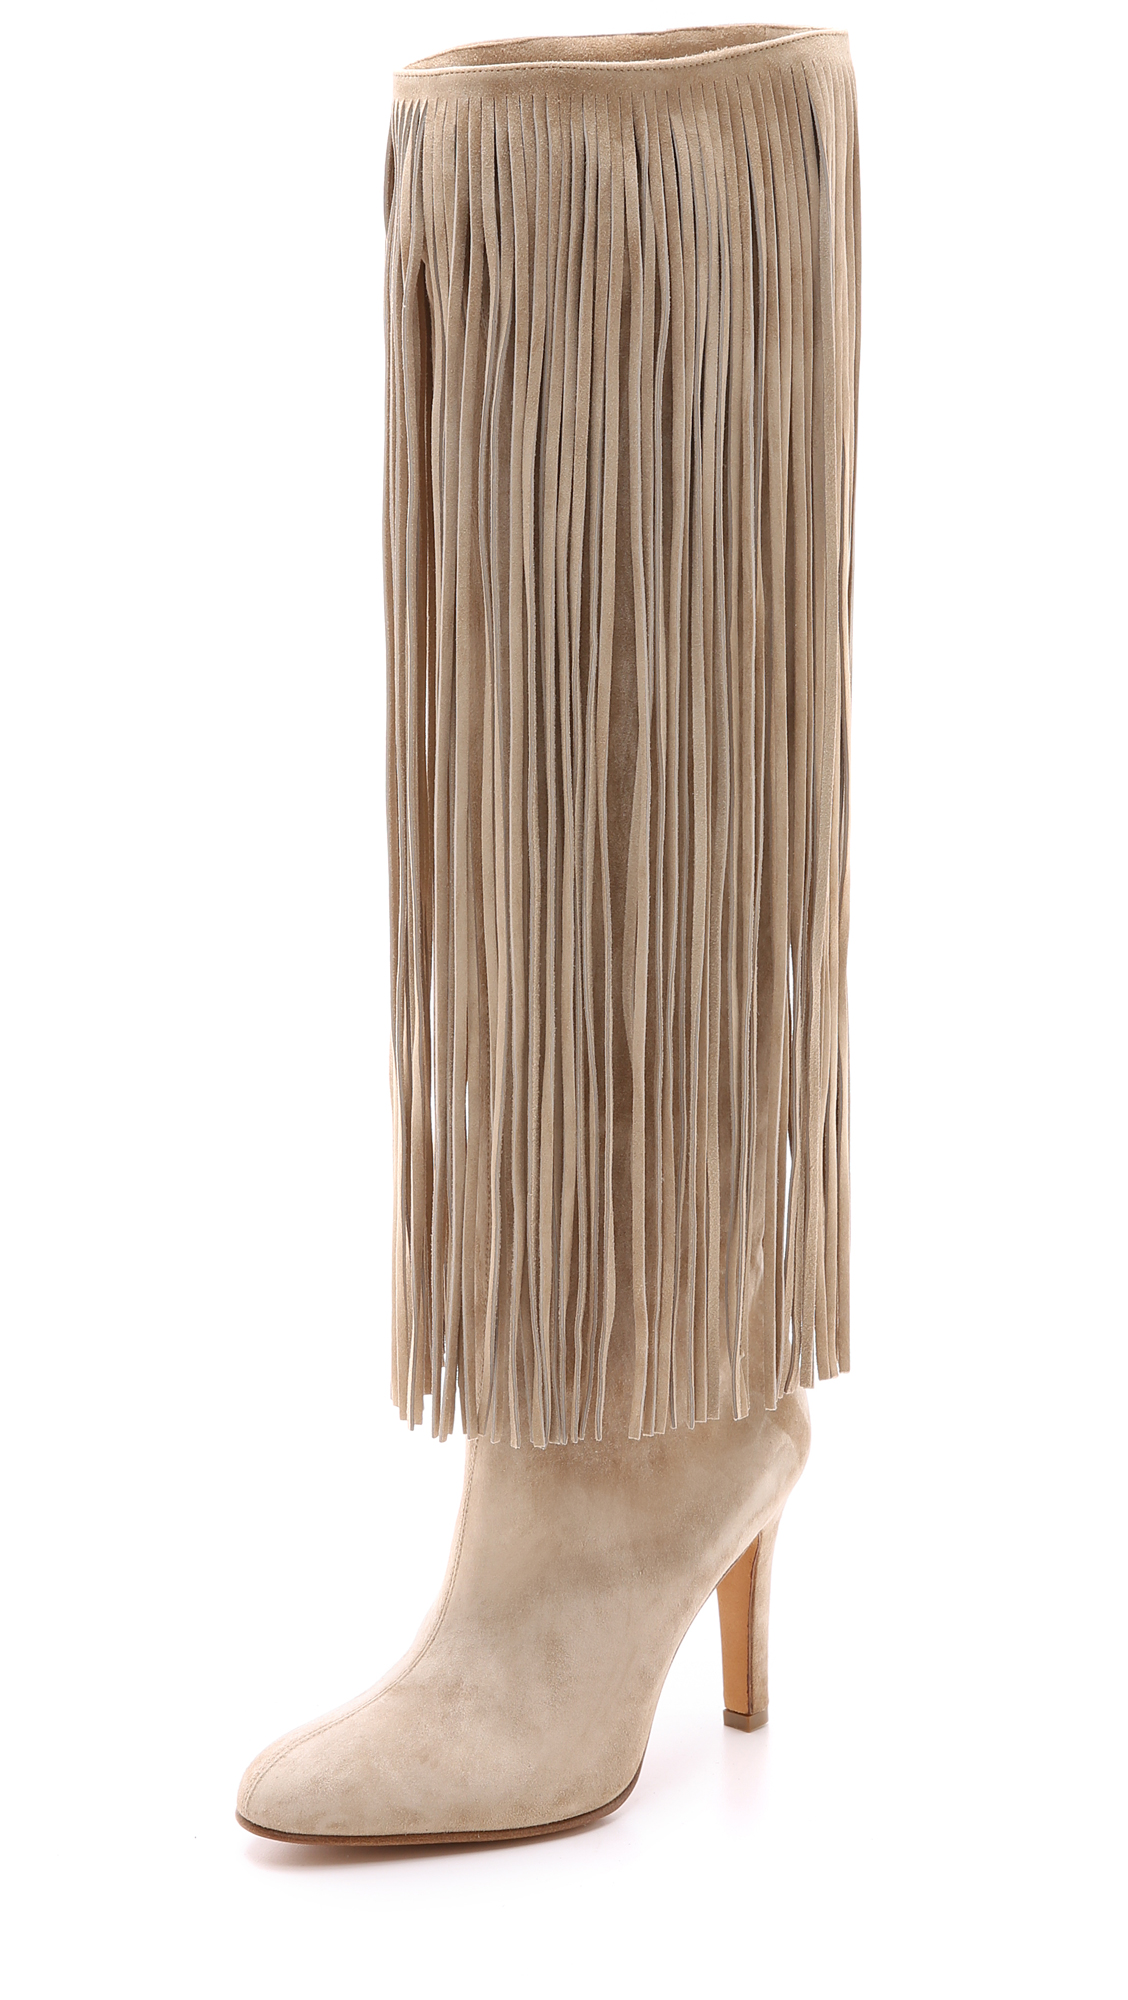 Alexa Wagner Nelli Suede Fringe Boots - Nude